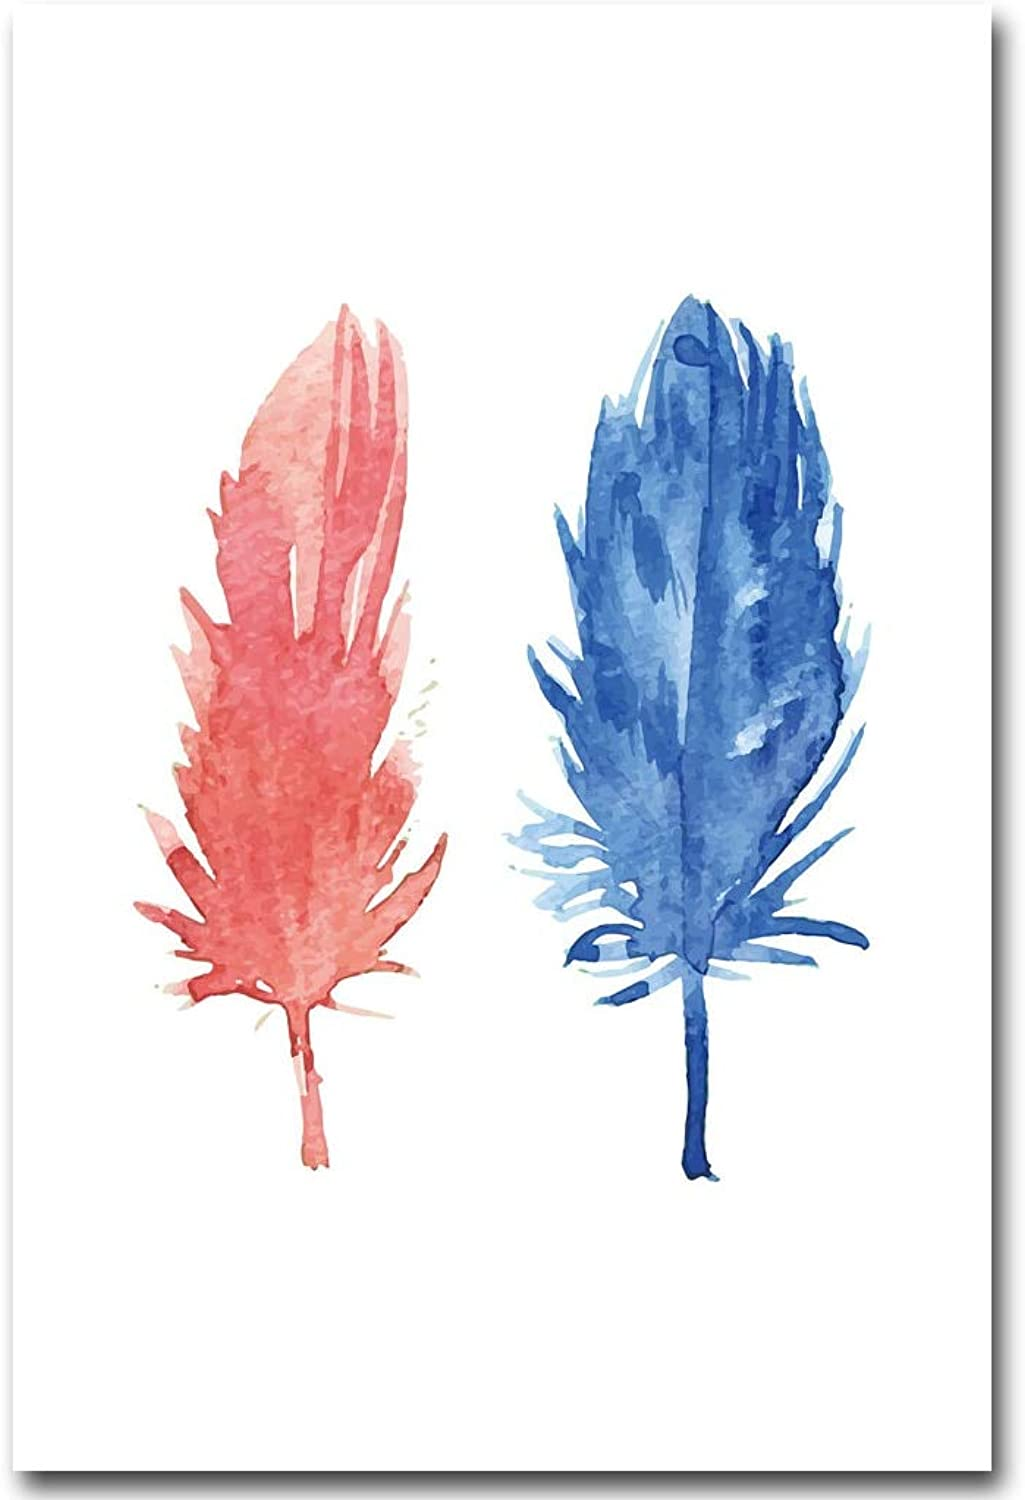 LIEFENGDAO WaterColor Feather Art Canvas Poster Painting Abstract Wall Picture For Home Living Room Decoration,70X100Cm No Frame,Picture 1